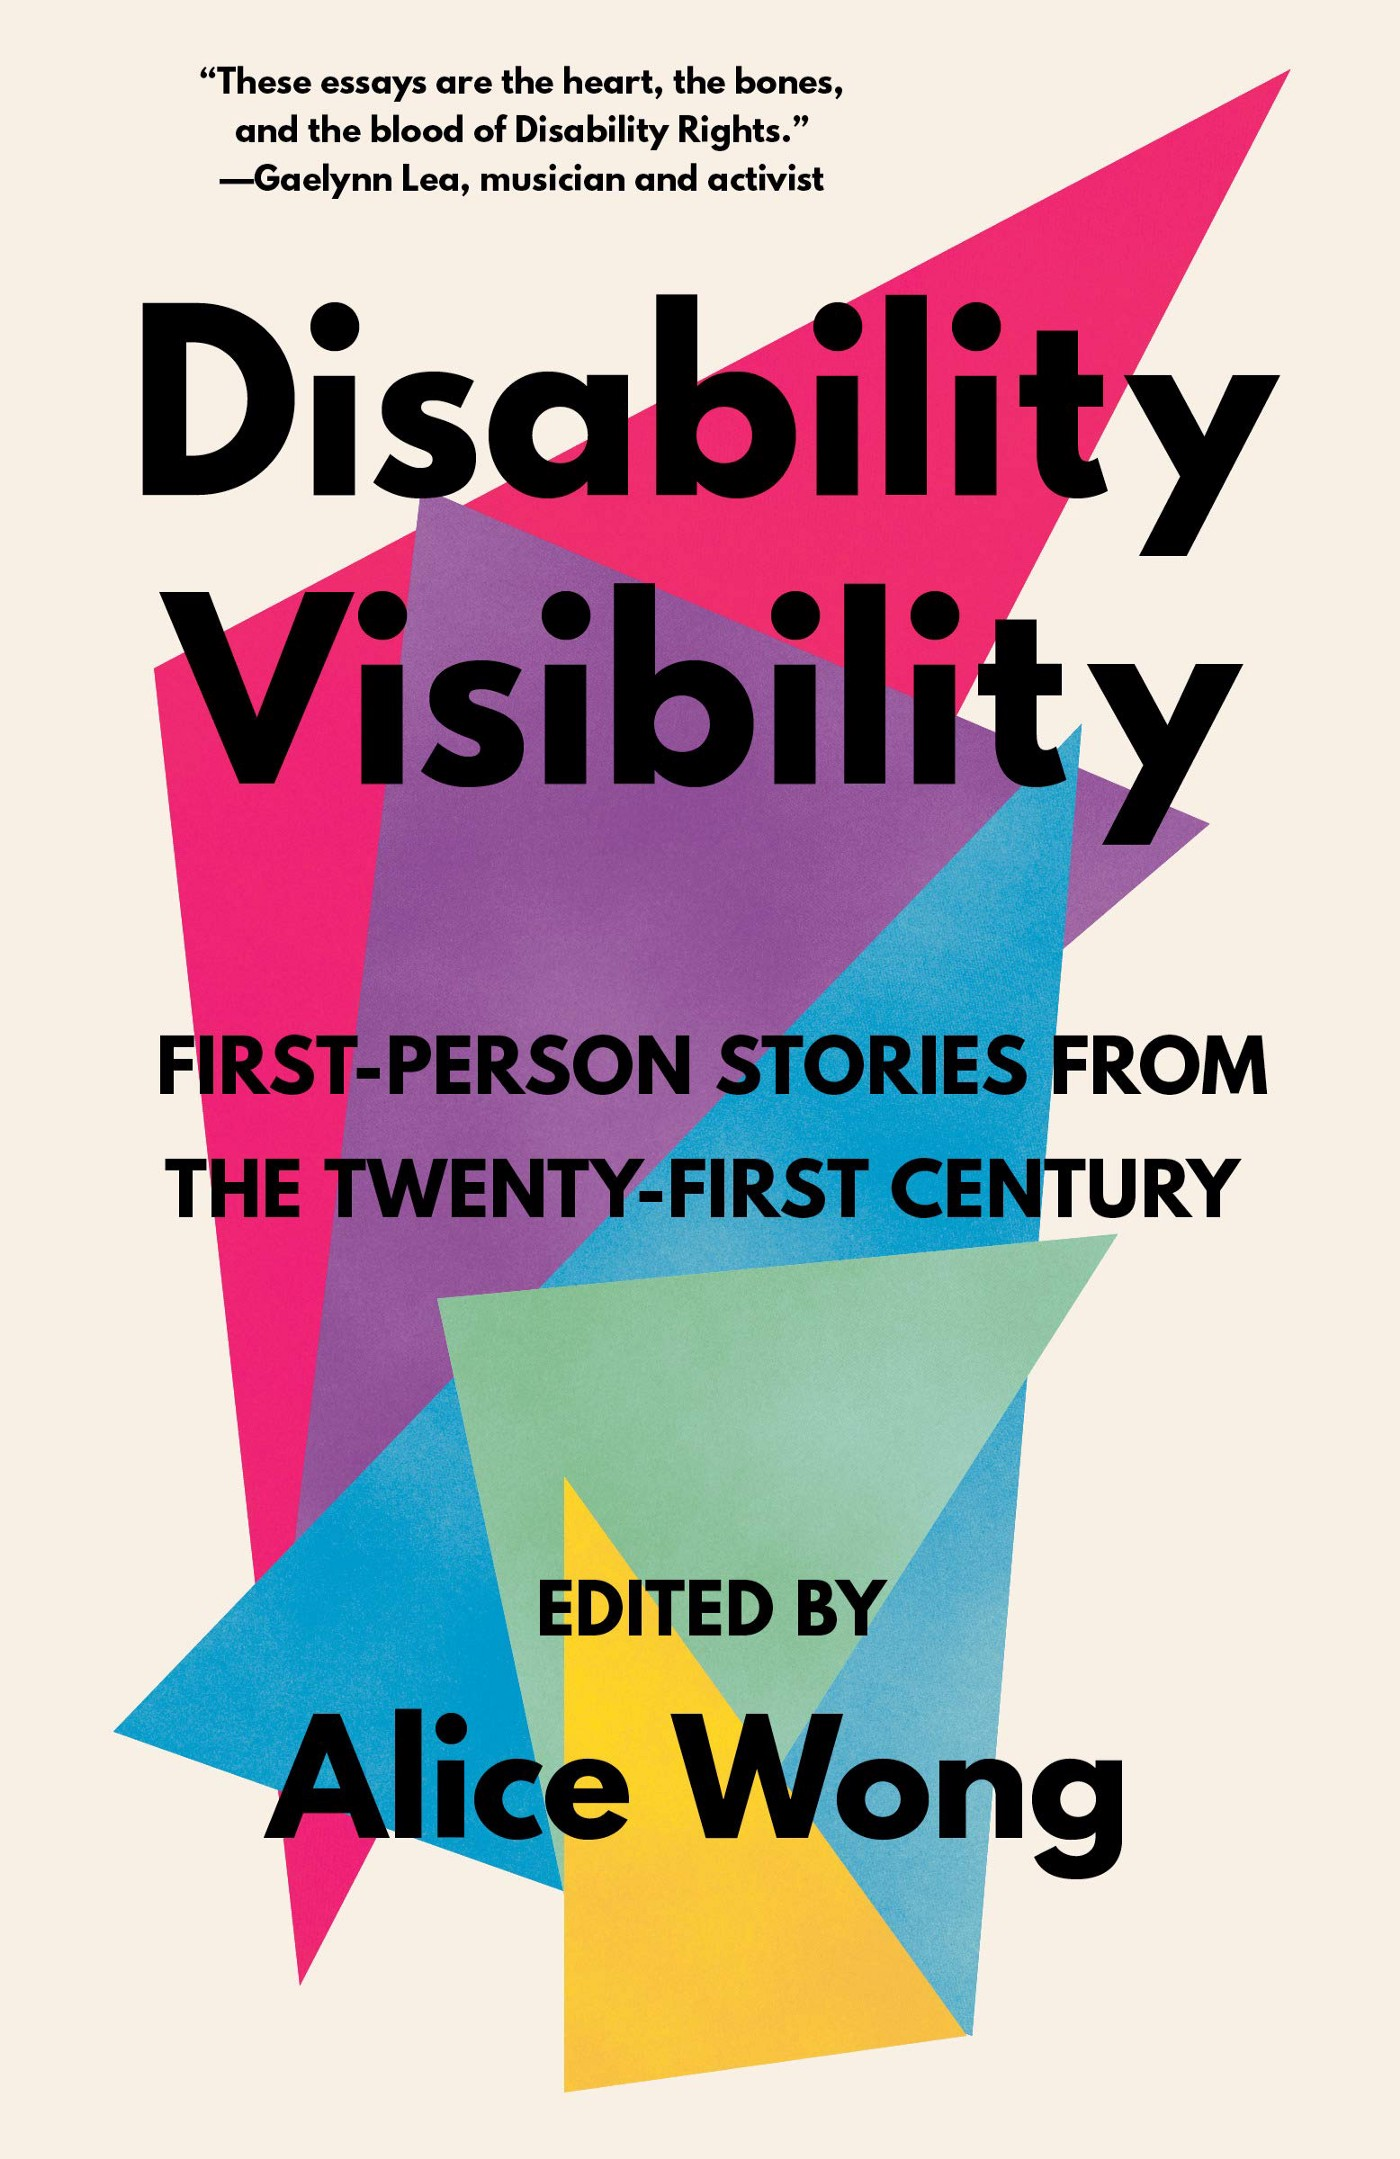 Quote on cover: These essays are the heart, the bones, and the blood of Disability Rights. Gaelynn Lea, musician and activist